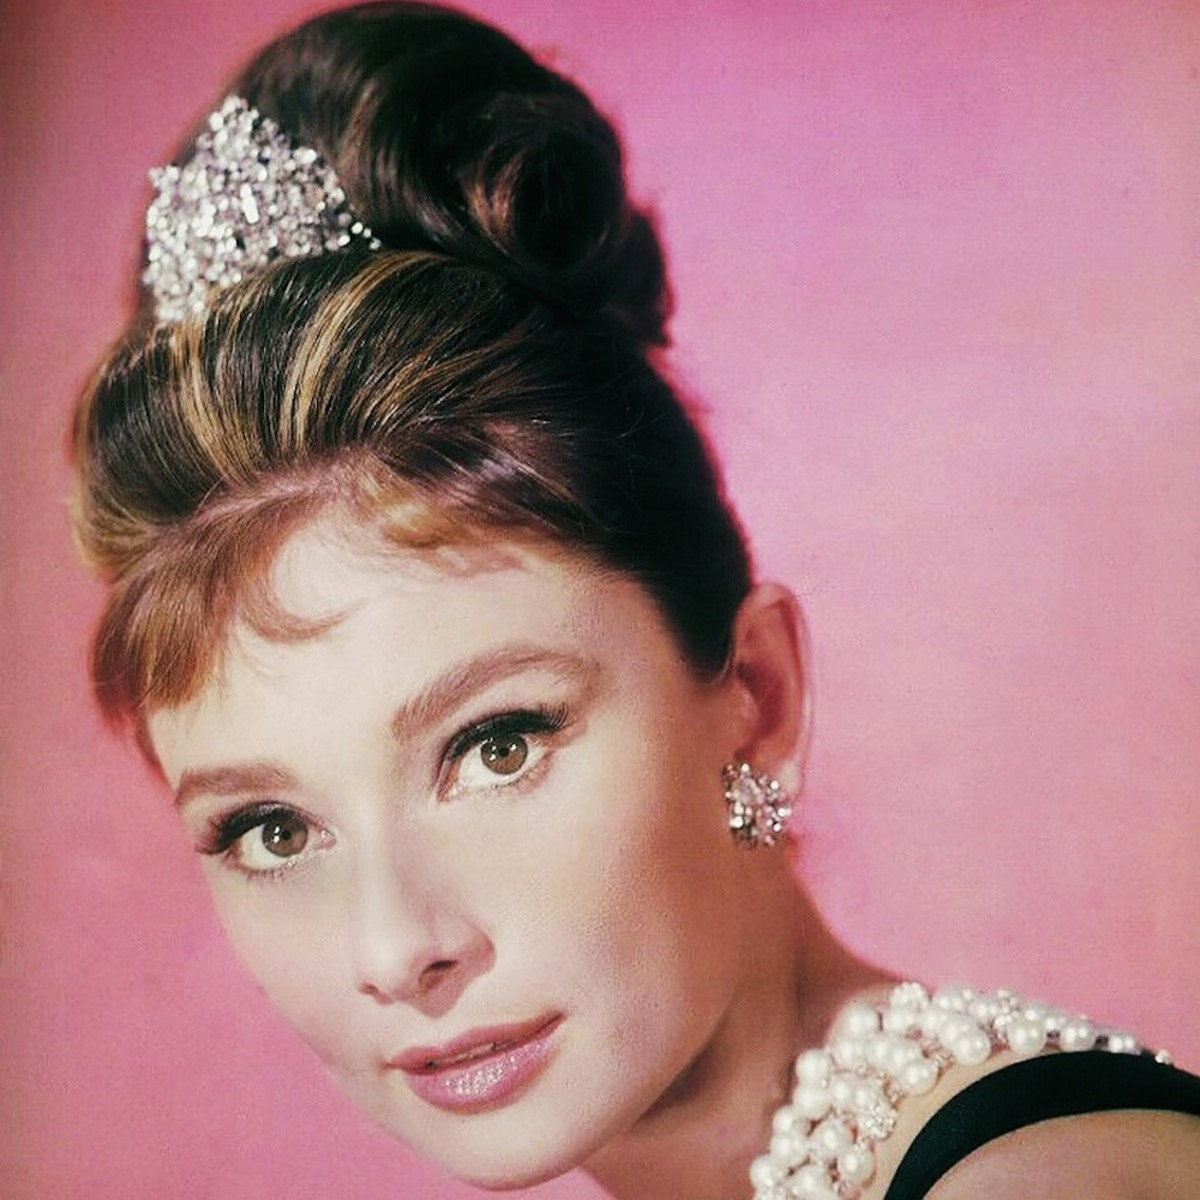 Audrey Hepburn is synonymous with the Little Black Dress.